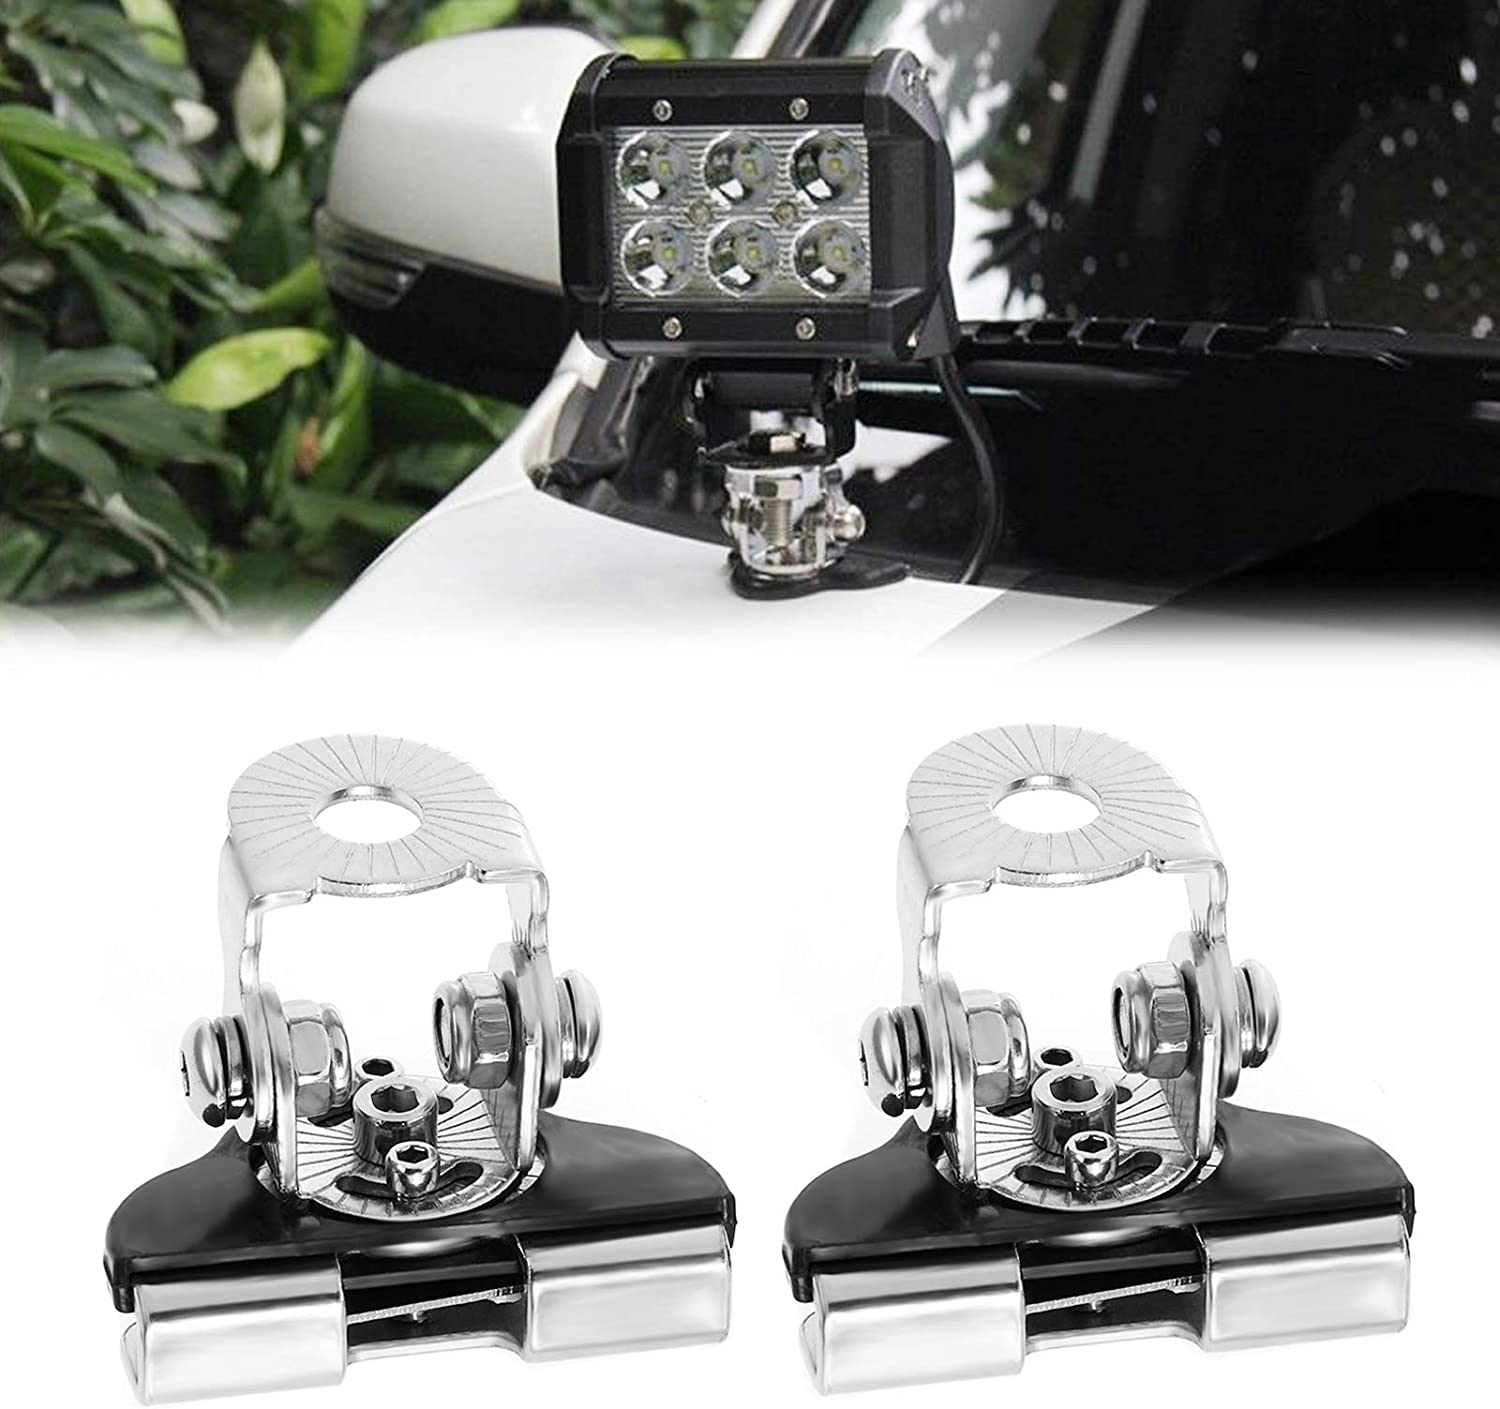 Auxbeam Light Bar Mounting Brackets 2PCS Universal Stainless Steel Pillar Hood Word Light Mount Bracket Clamp Holder for Truck Jeep Offroad SUV Without Drilling